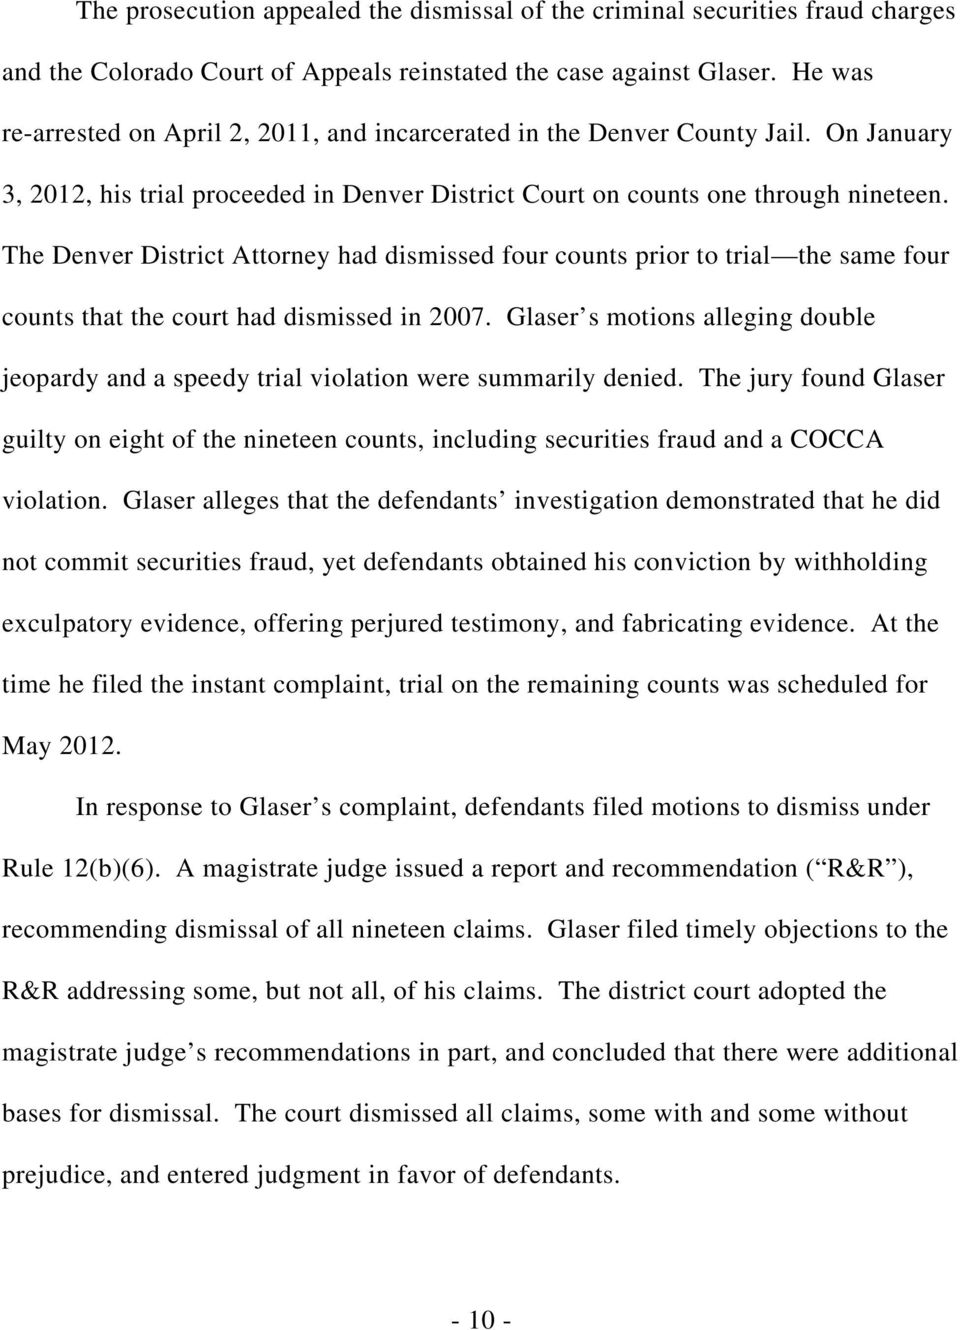 The Denver District Attorney had dismissed four counts prior to trial the same four counts that the court had dismissed in 2007.